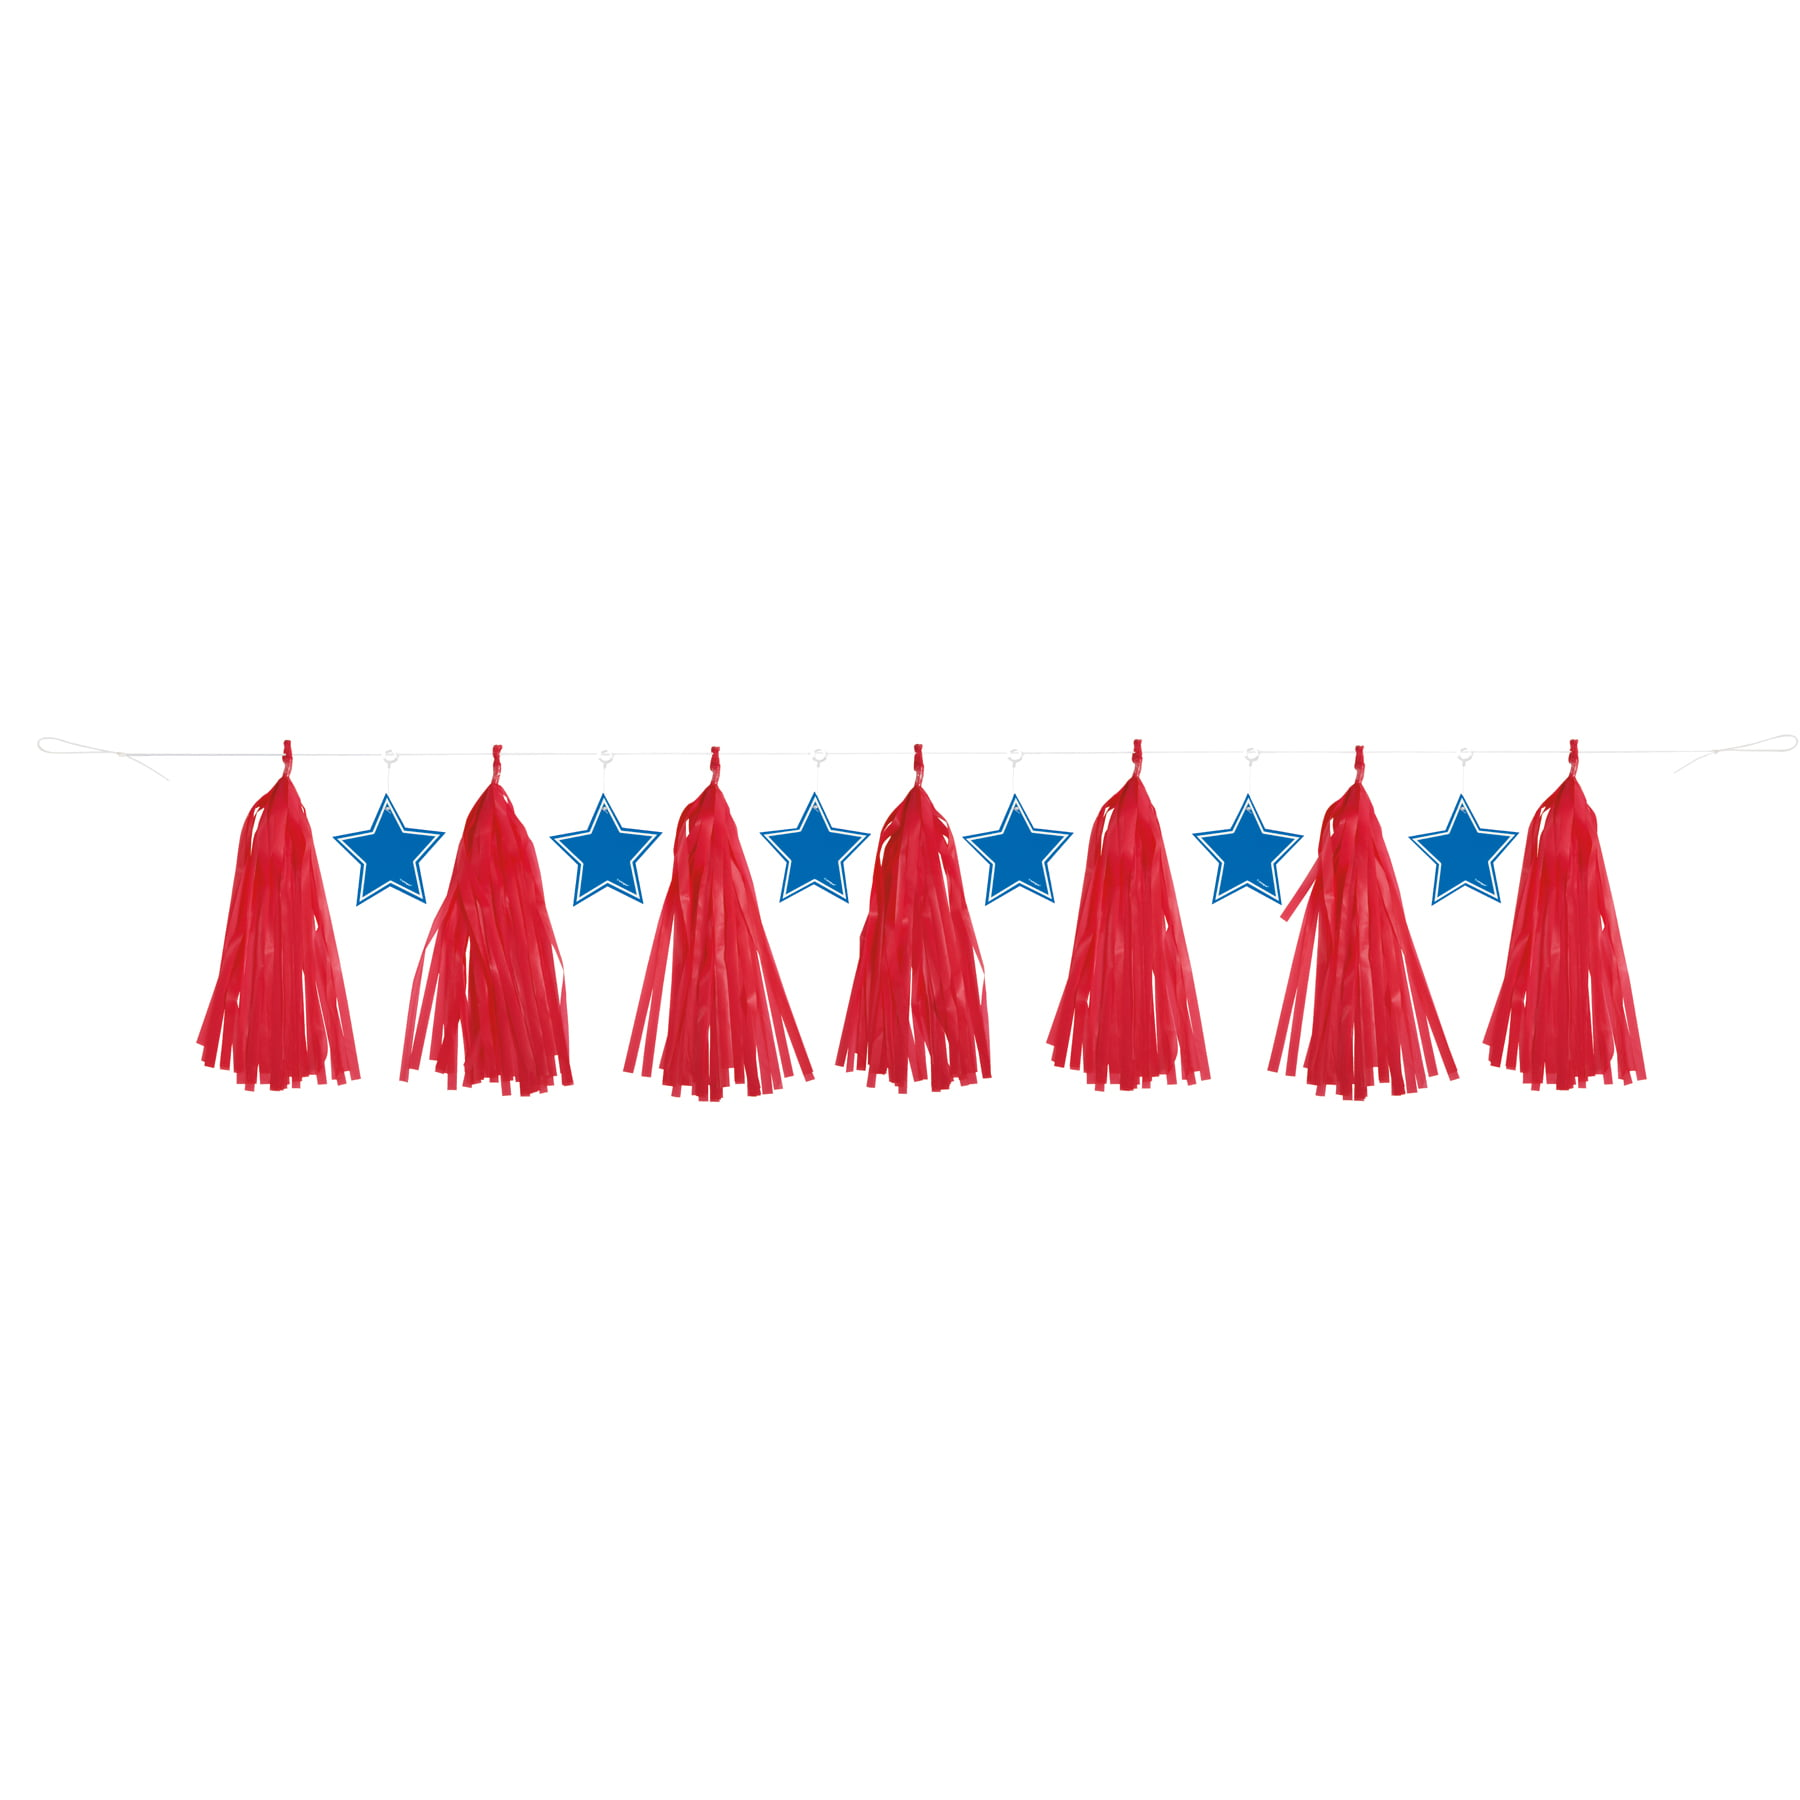 Patriotic Freedom Only 16.99 20 Tassel Presidents Day Tissue Paper Garland Decorations Red White Blue SHIPPED NEXT DAY Inauguration